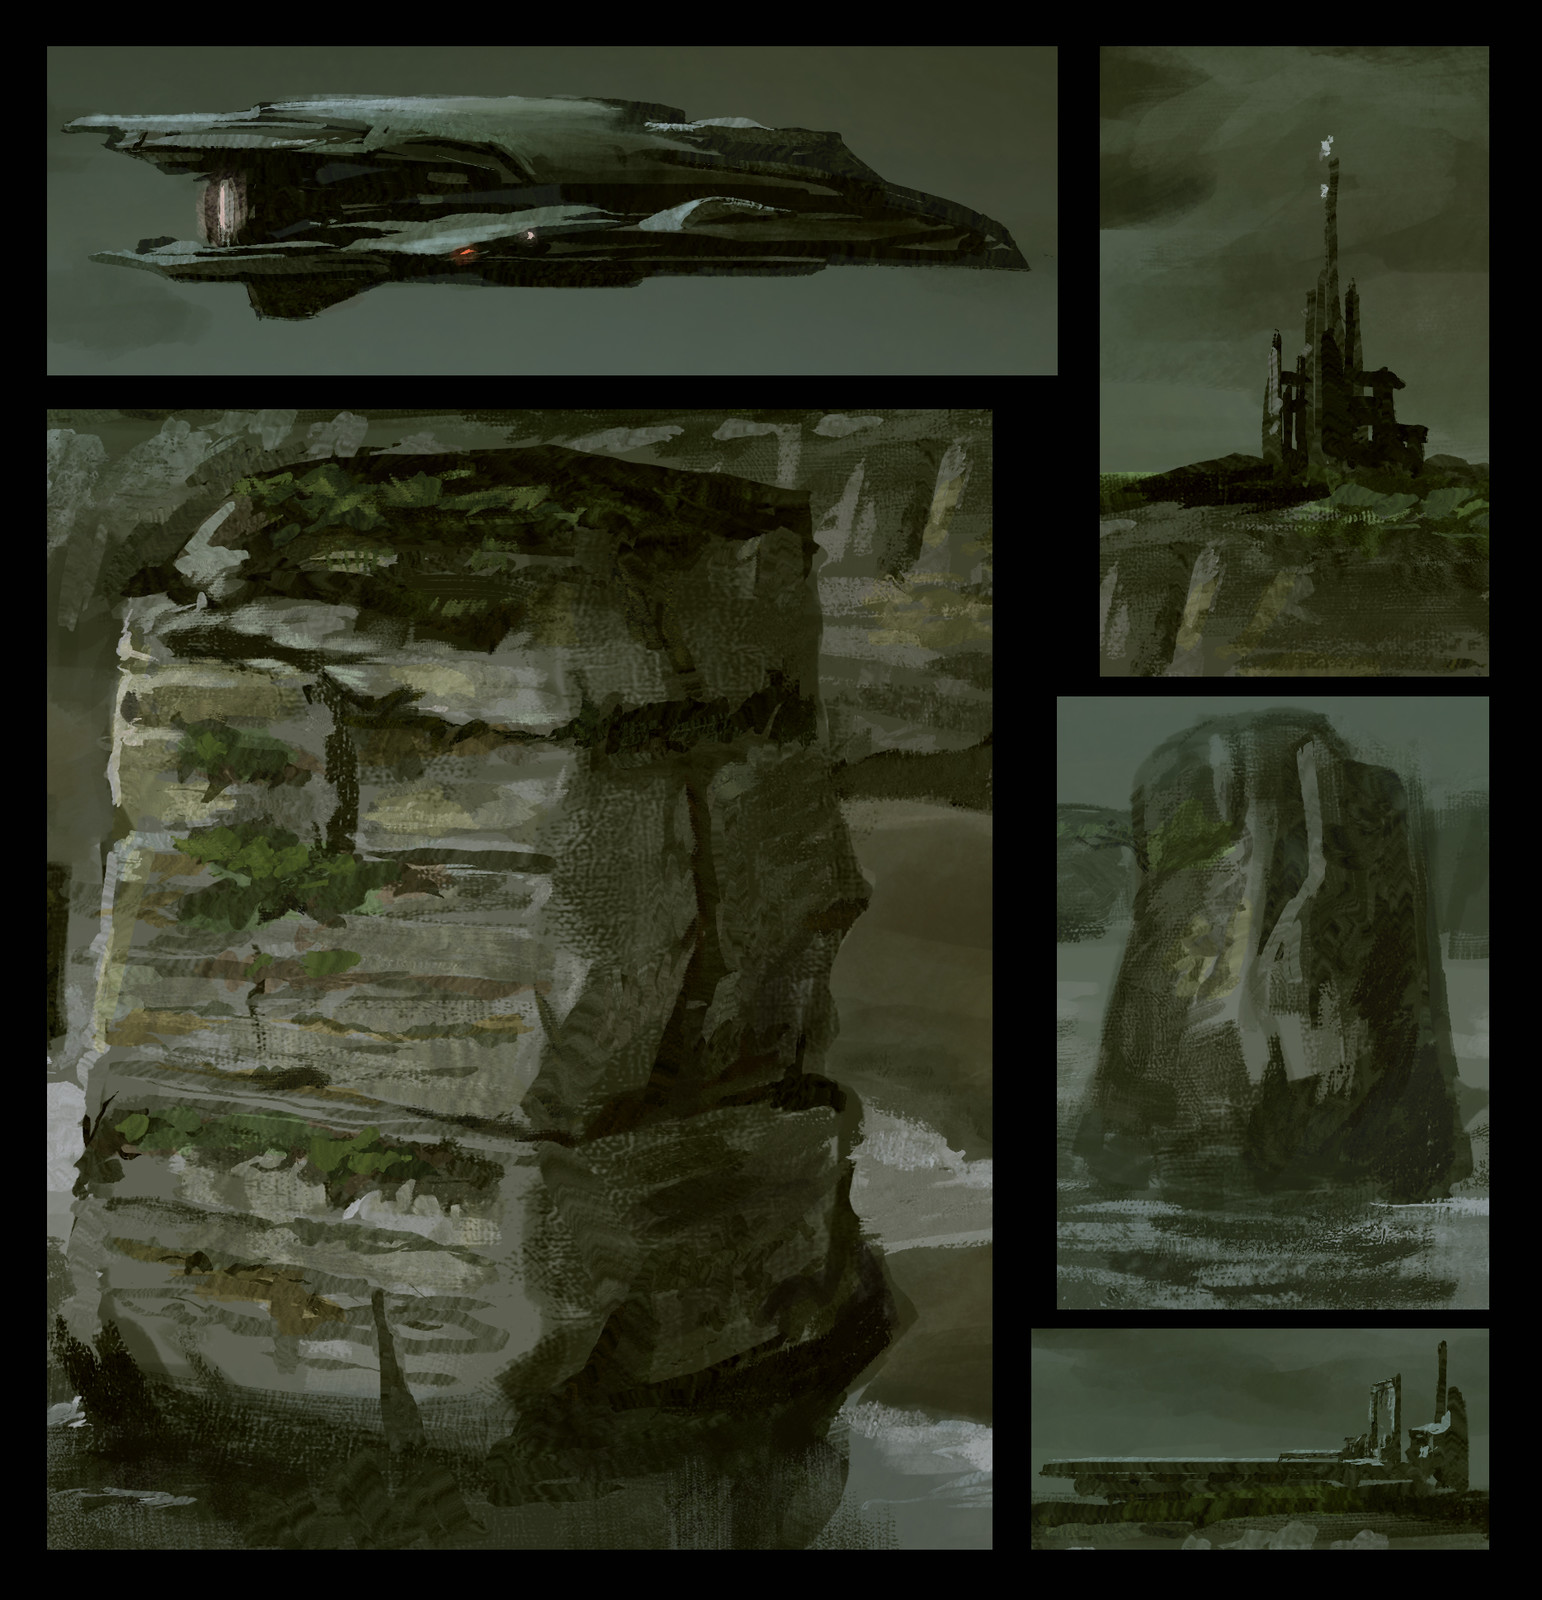 Outpost - details